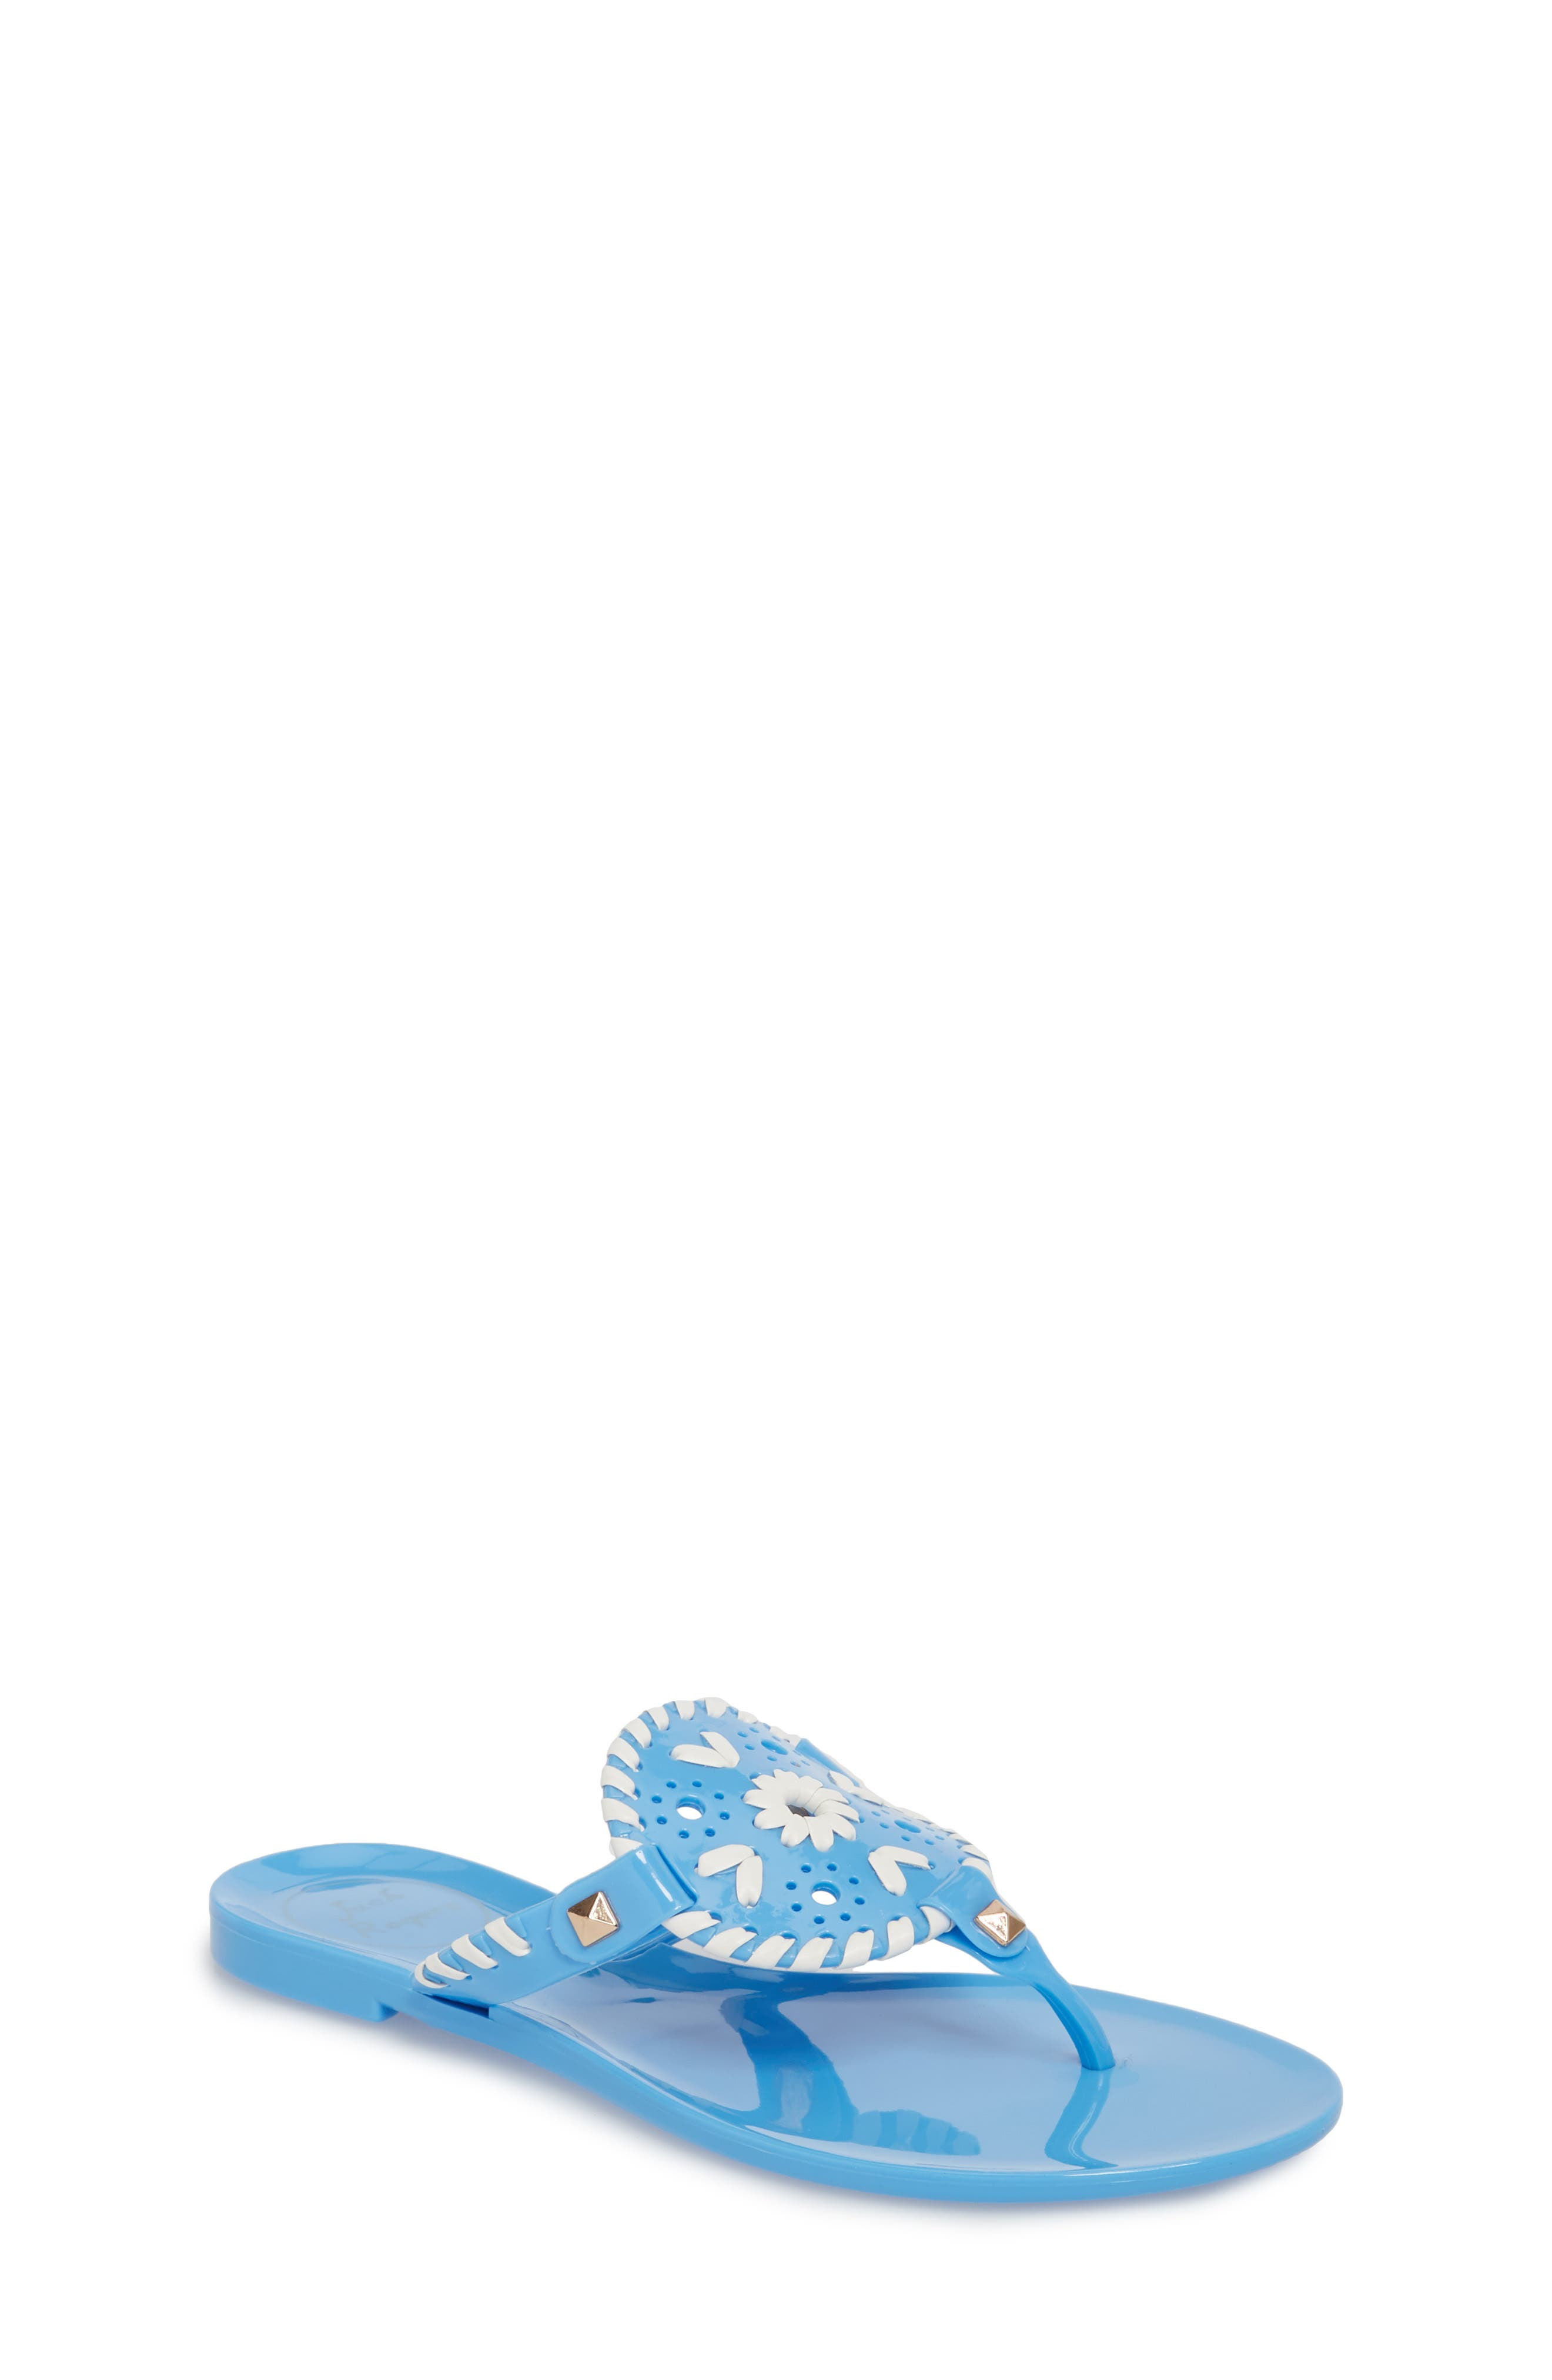 'Miss Georgica' Jelly Flip Flop,                             Main thumbnail 1, color,                             FRENCH BLUE/ WHITE JELLY